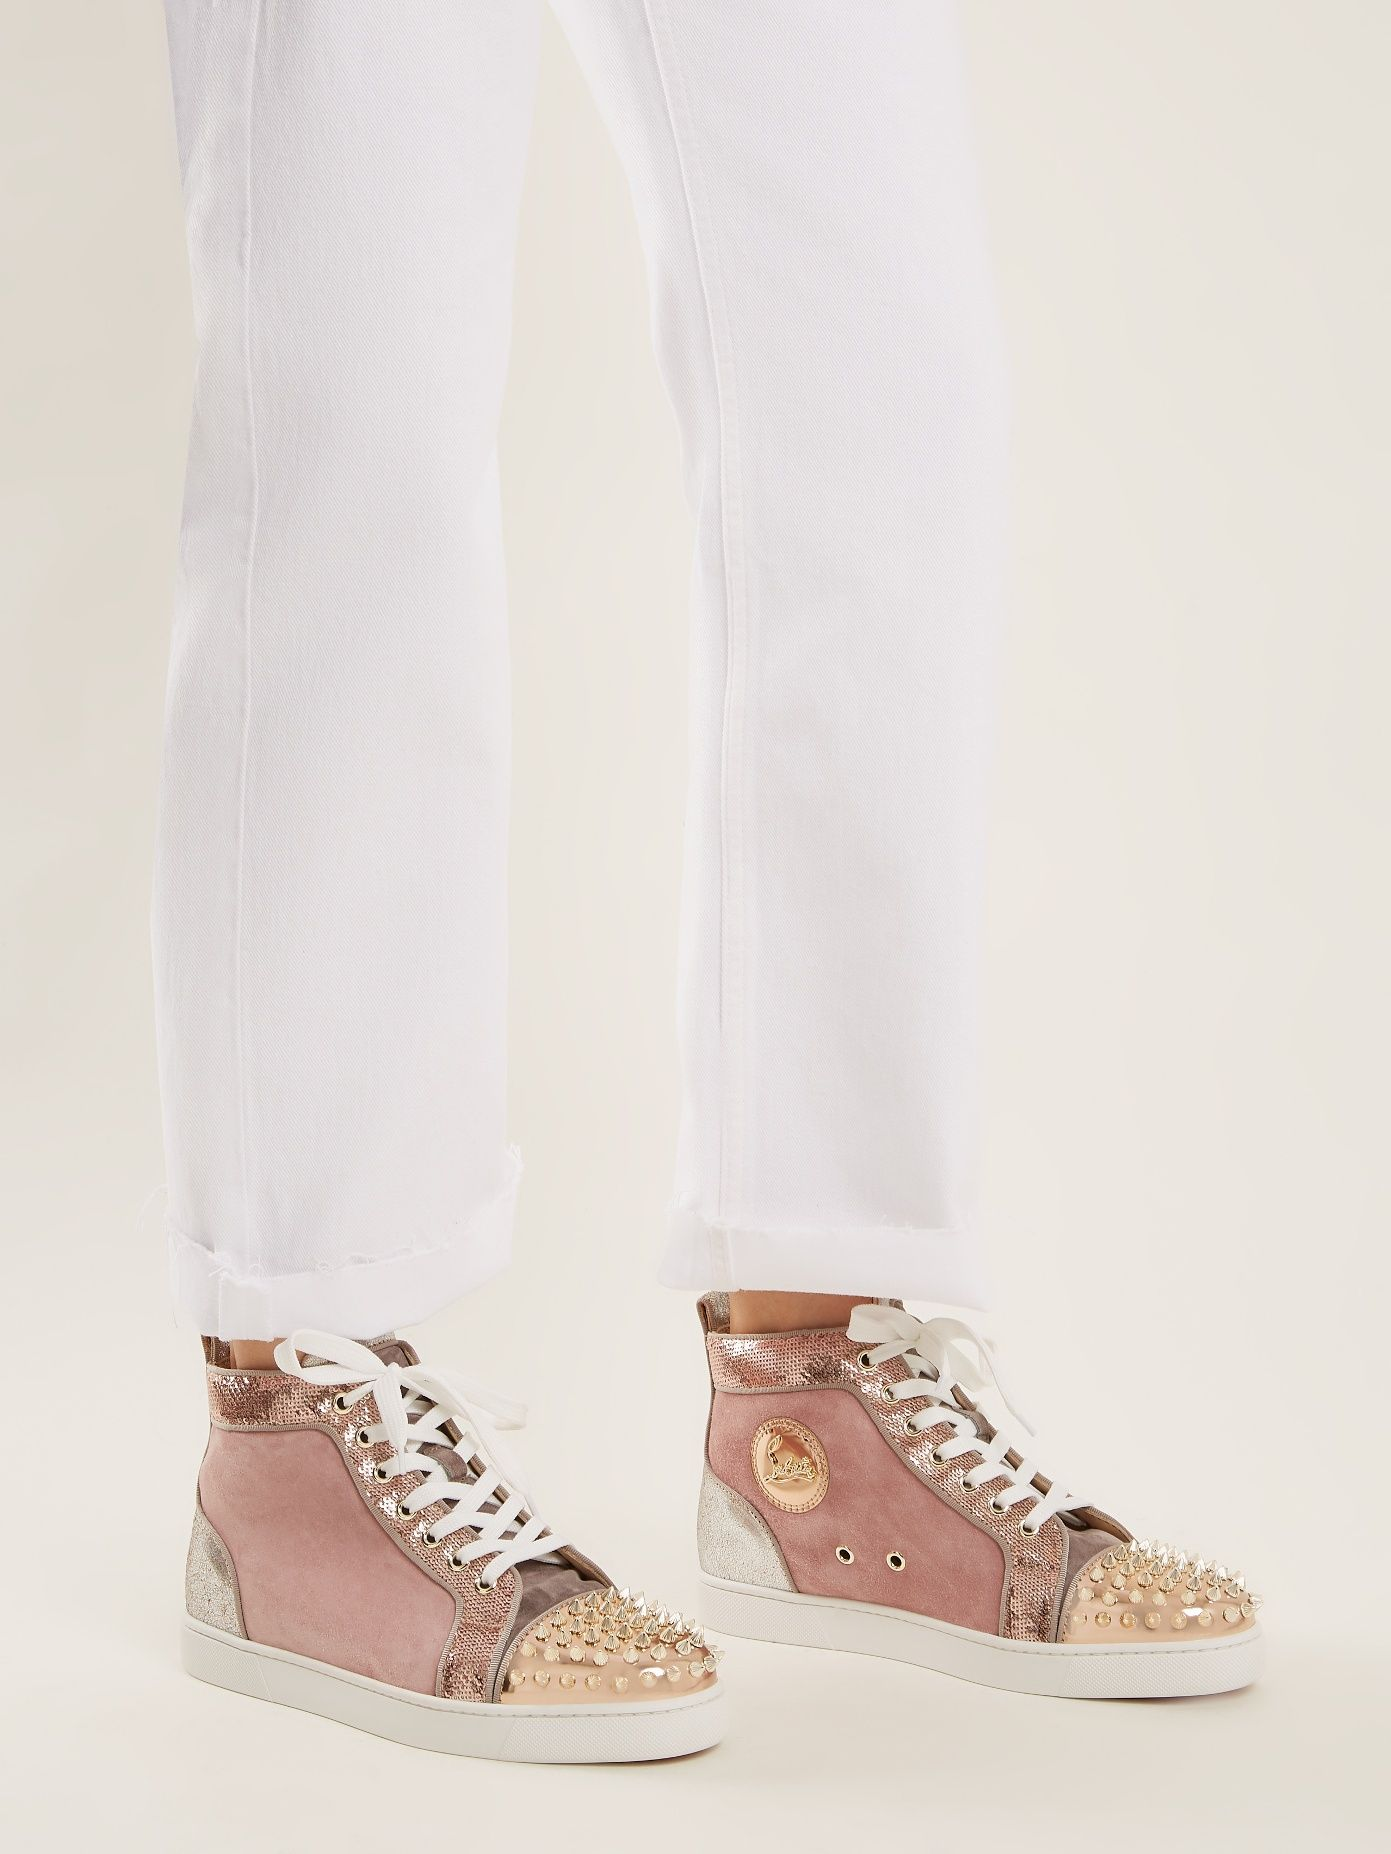 sale retailer fa1ac c4070 Lou stud-embellished suede high-top trainers by Christian ...